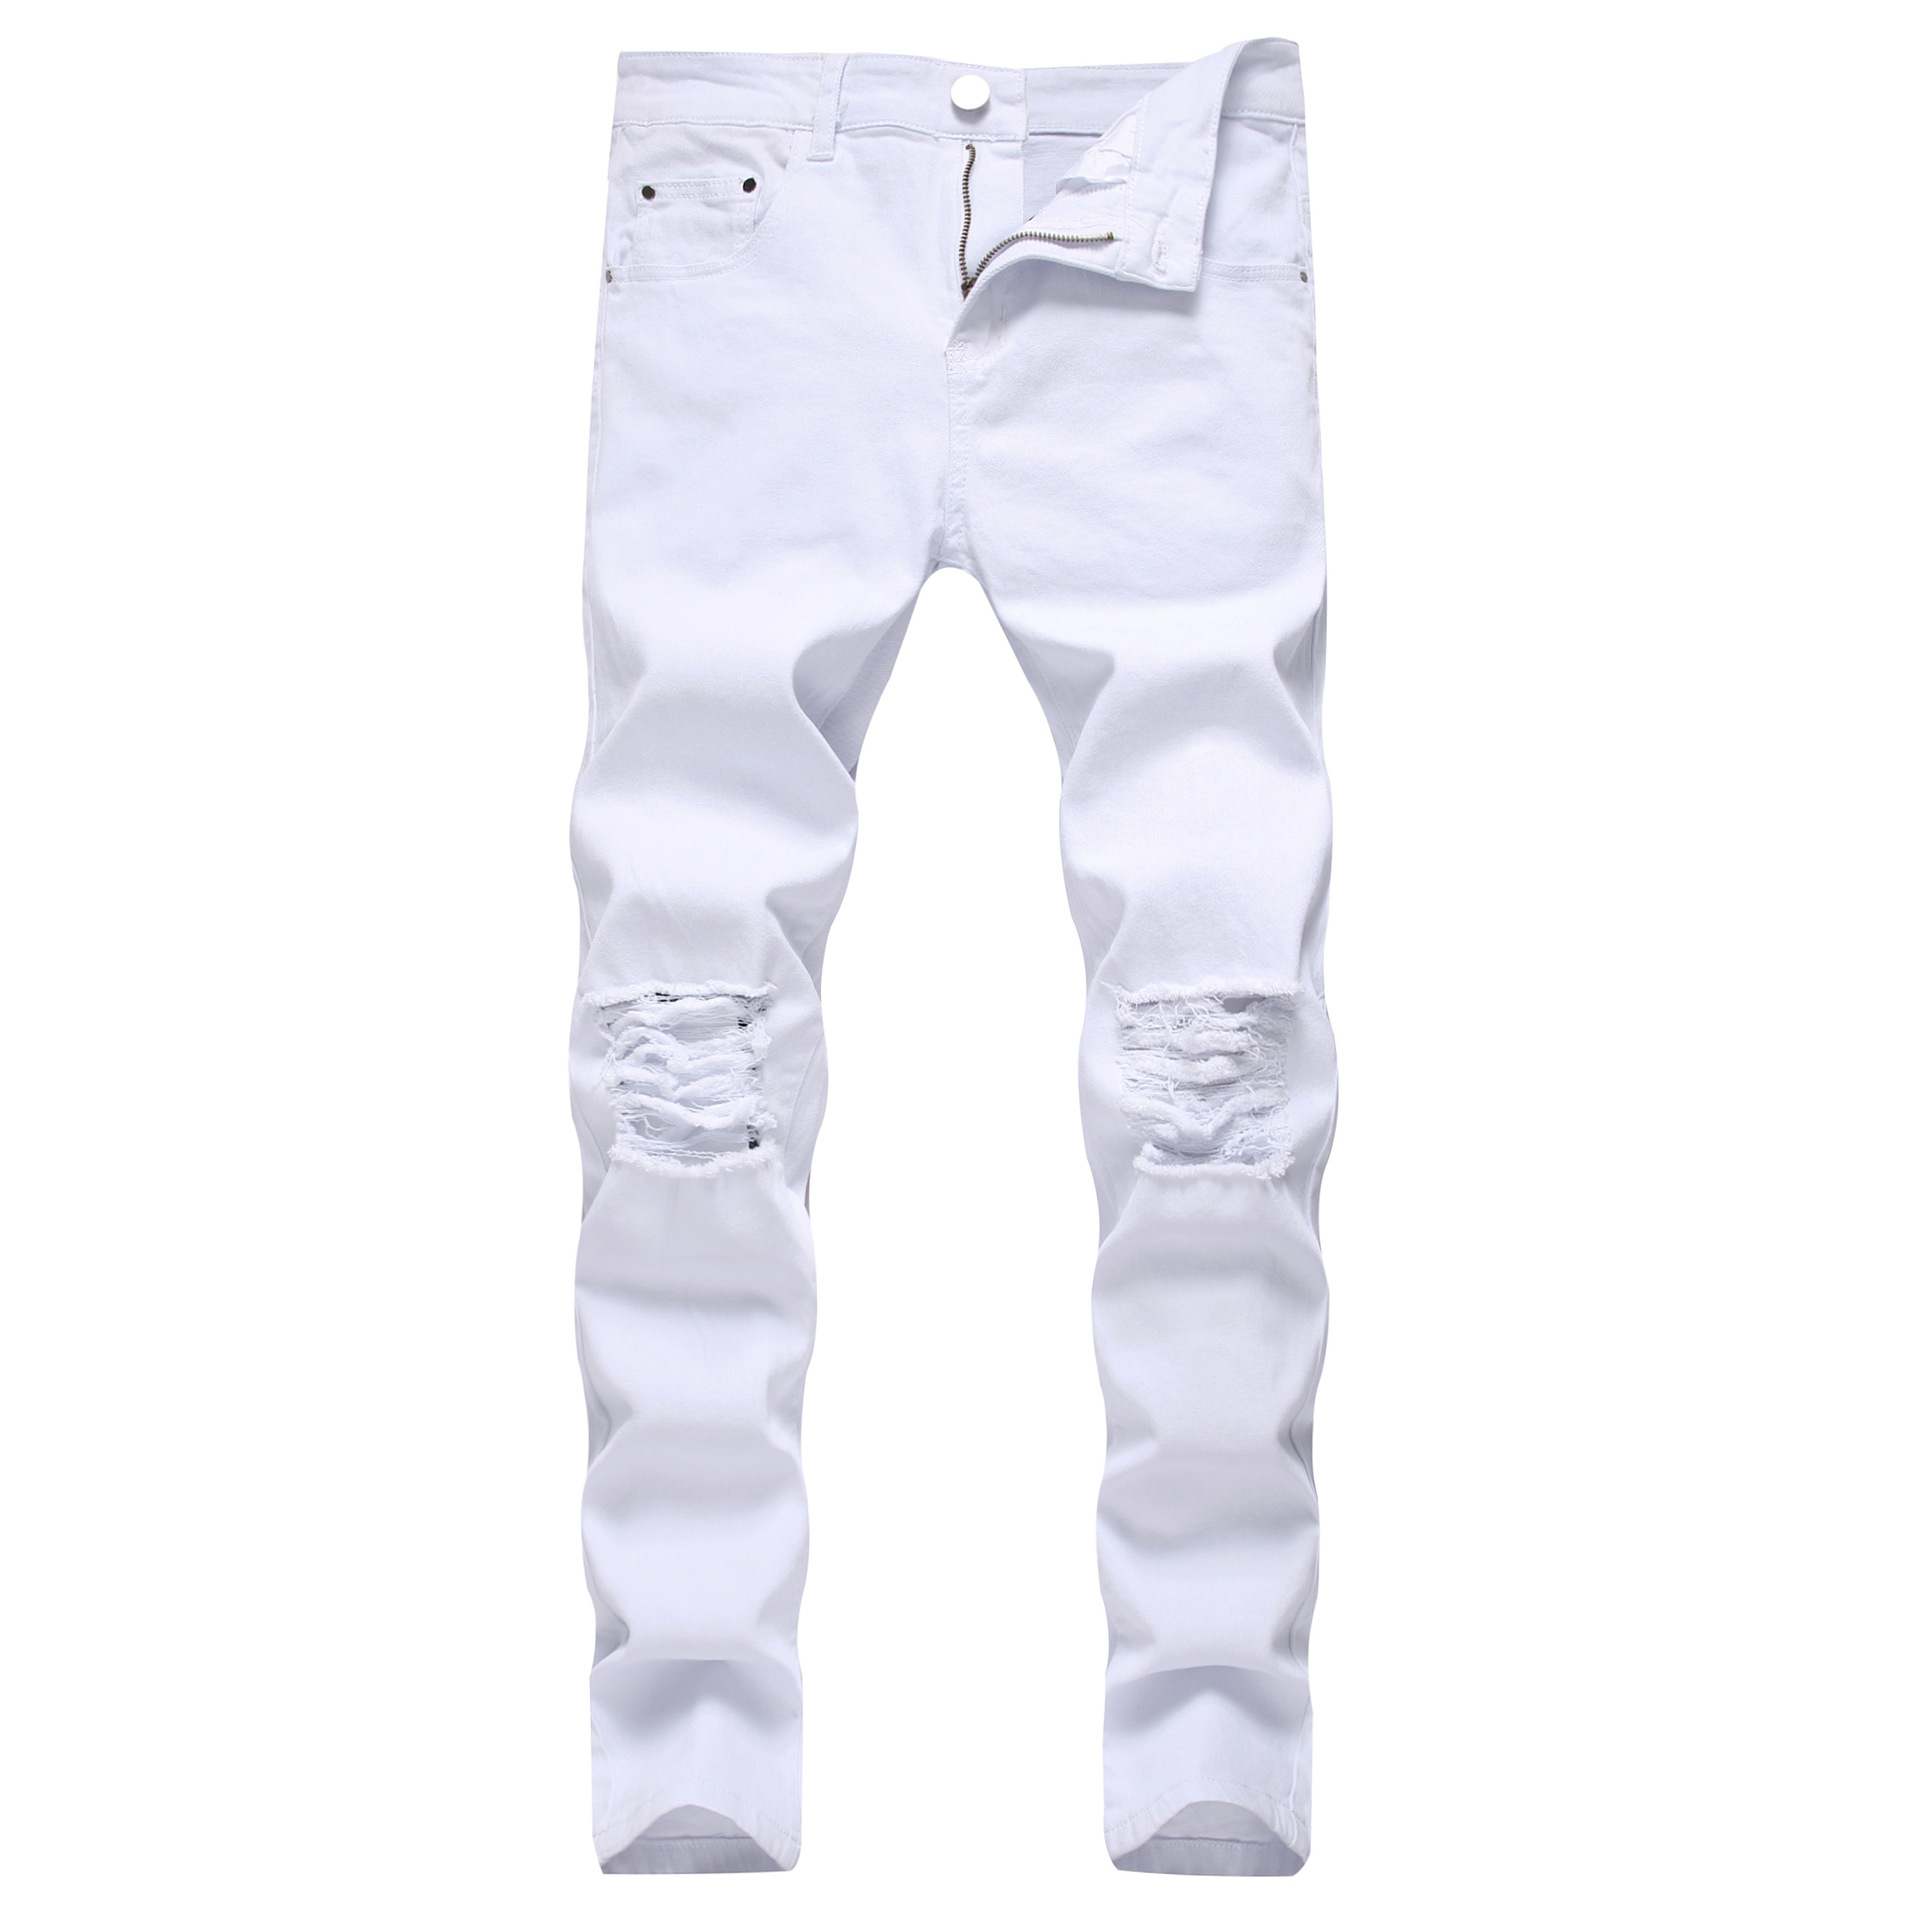 lawn Not complicated parent  Solid White Ripped Jeans Men 2020 Classic Retro Mens Skinny Jeans Brand  Elastic Denim Pants Trousers Casual Slim Fit Pencil Pant|Jeans| - AliExpress